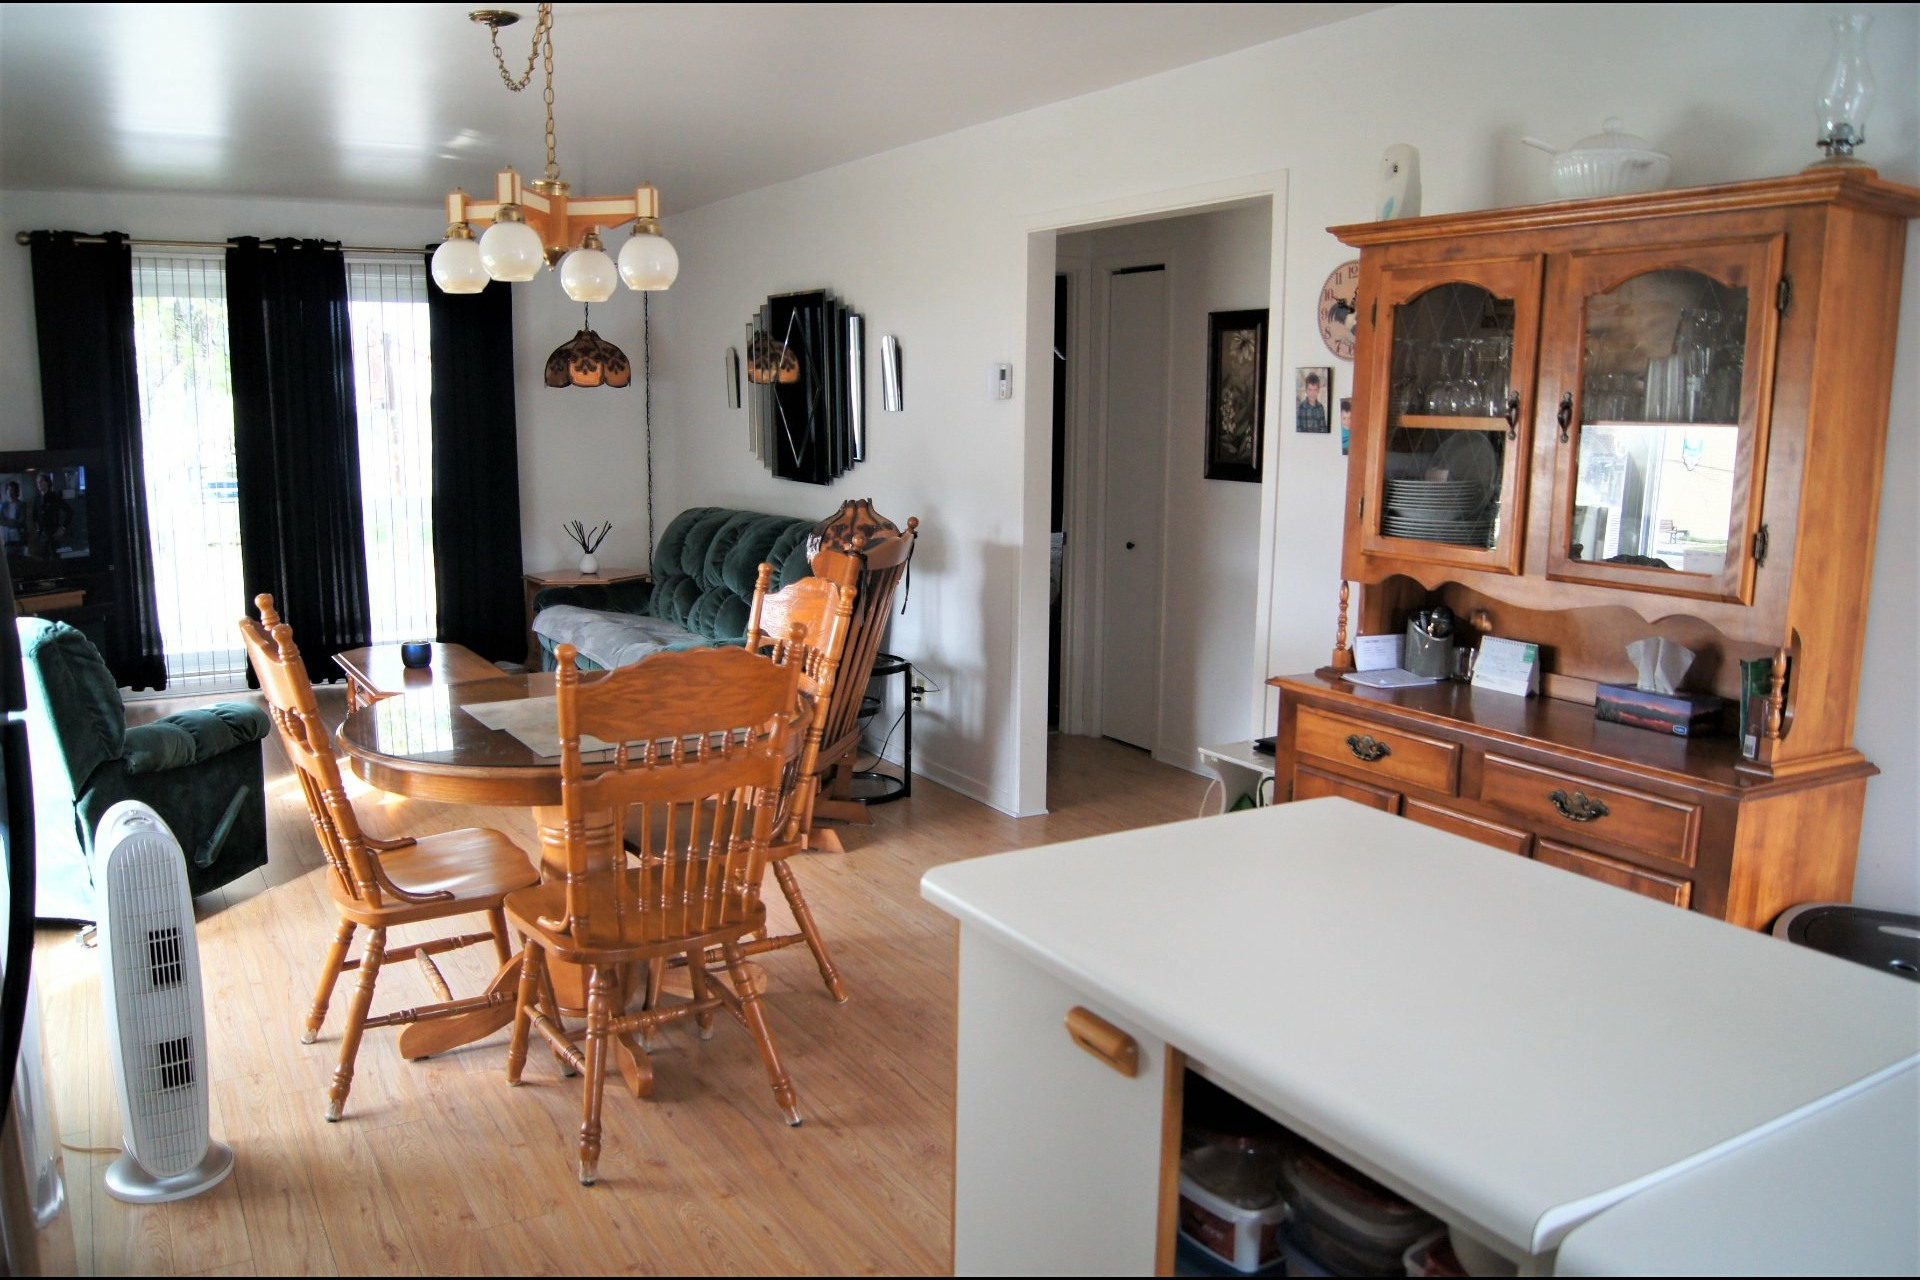 image 1 - Income property For sale La Tuque - 4 rooms